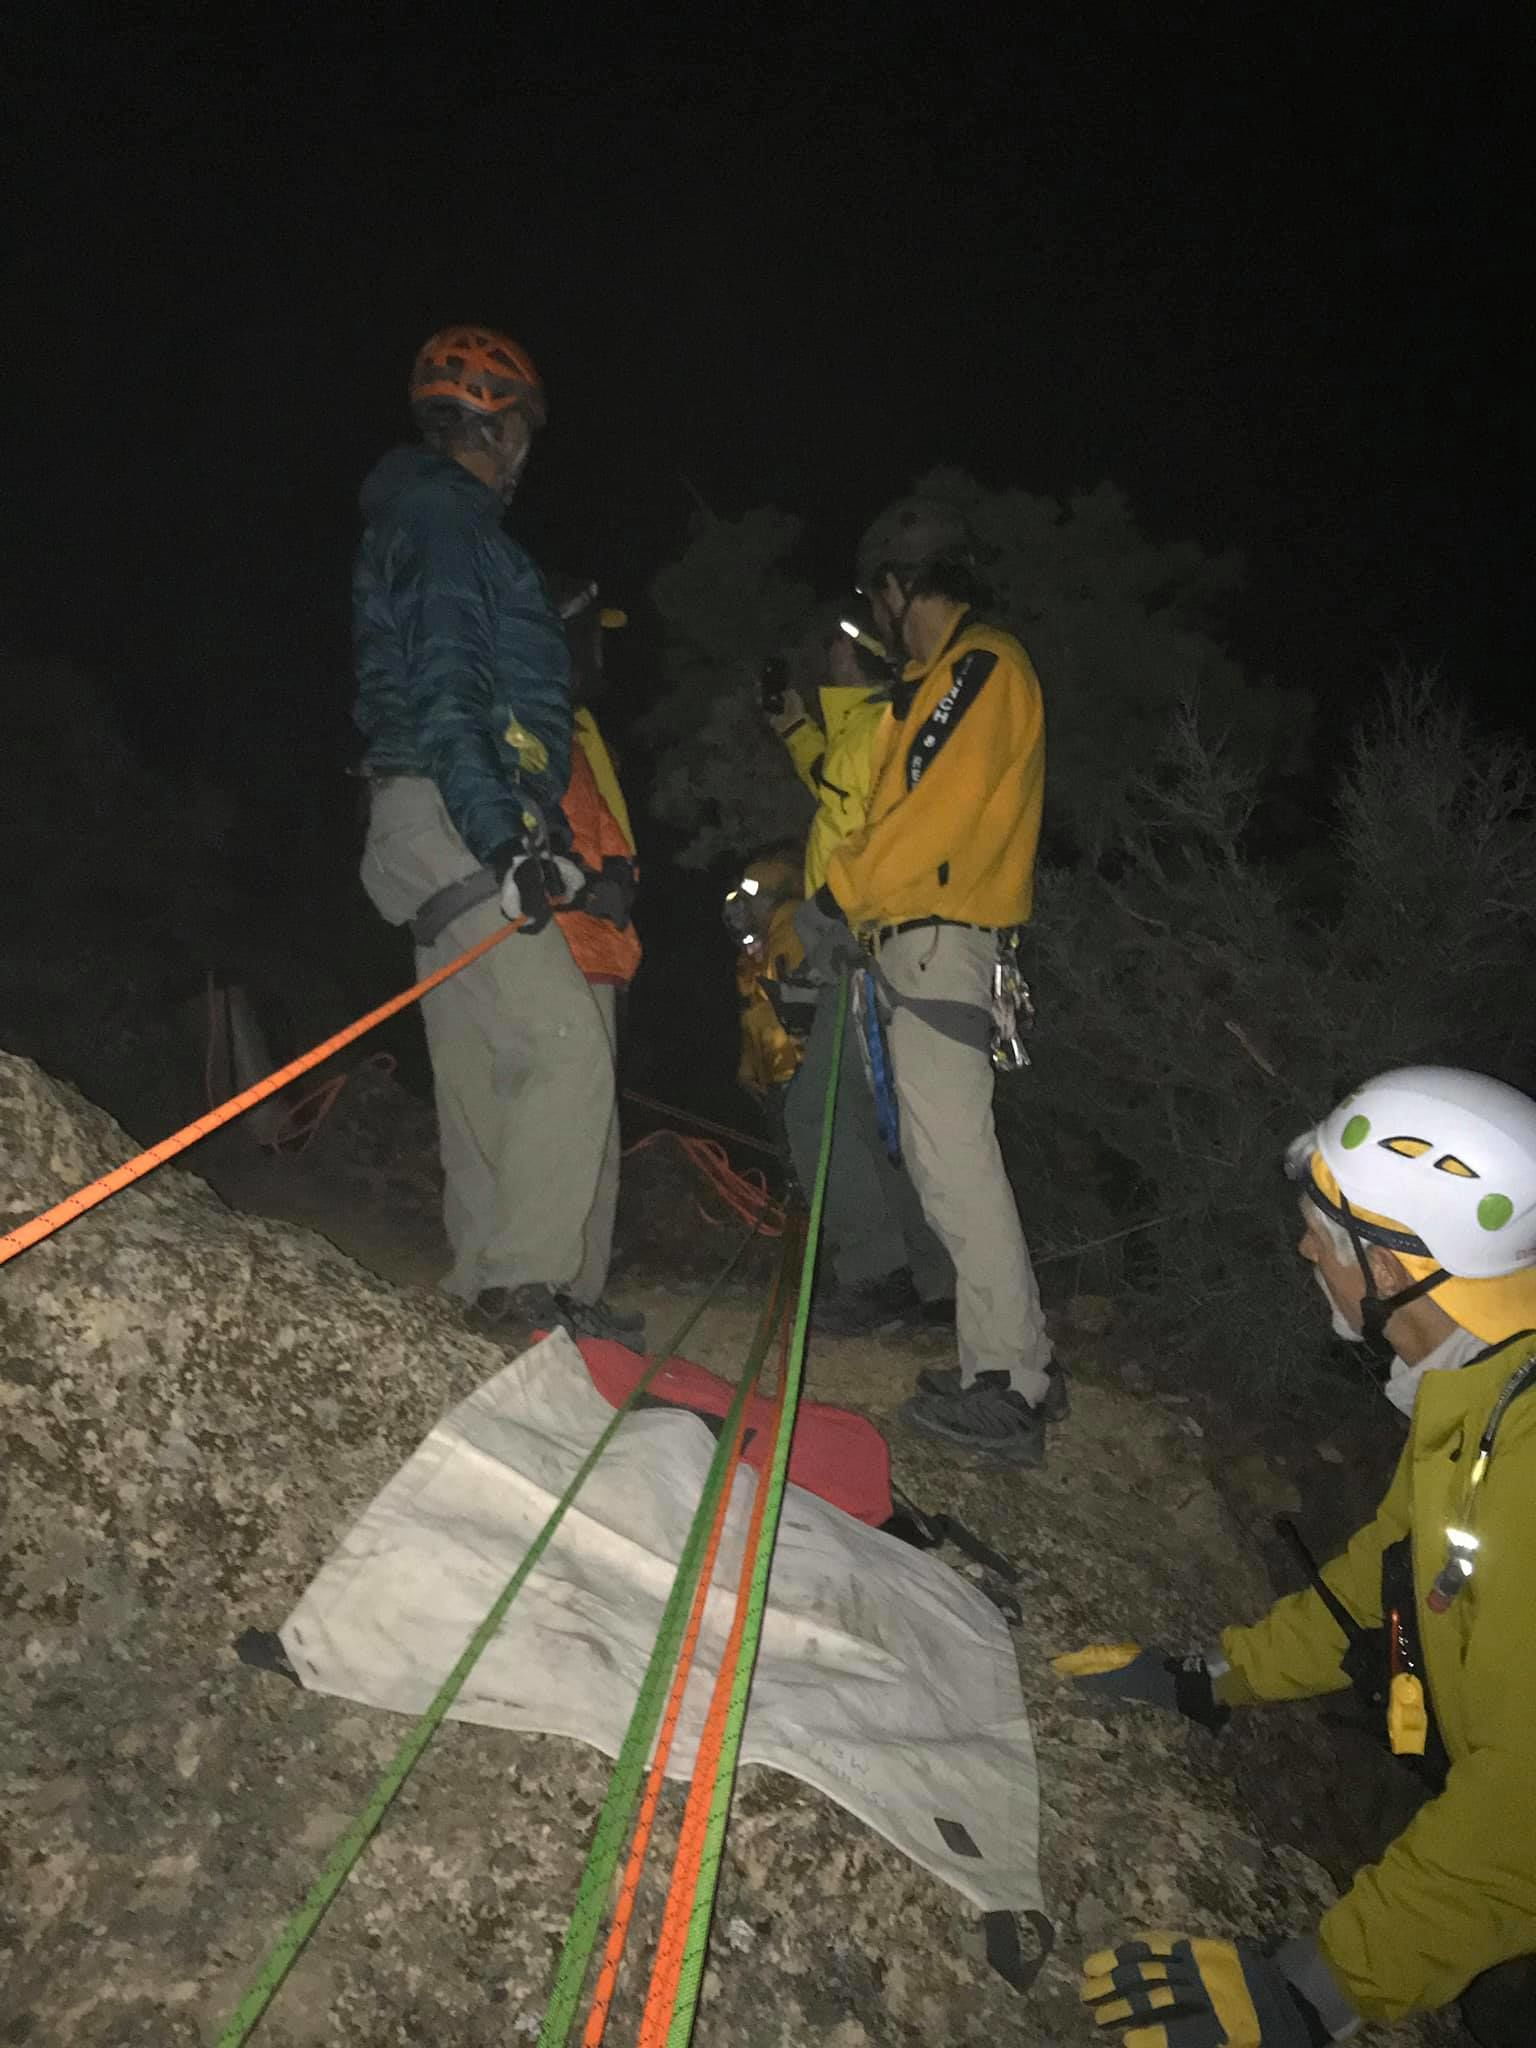 A hiker was rescued at Smith Rock State Park after suffering a long fall (DCS)